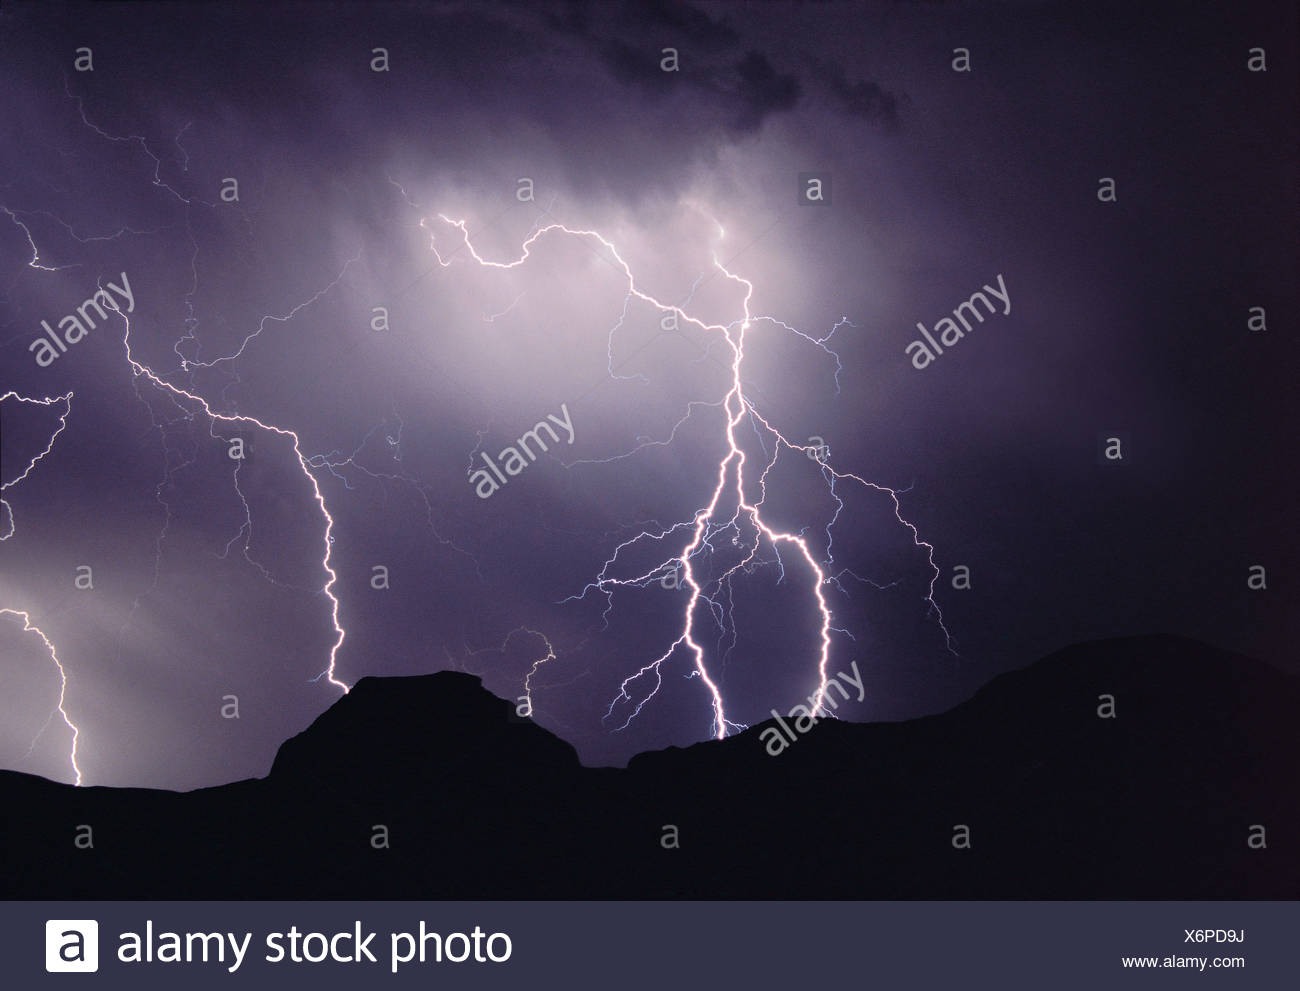 Lightning storm at night over Castle Butte, Big Muddy Badlands, Saskatchewan, Canada - Stock Image